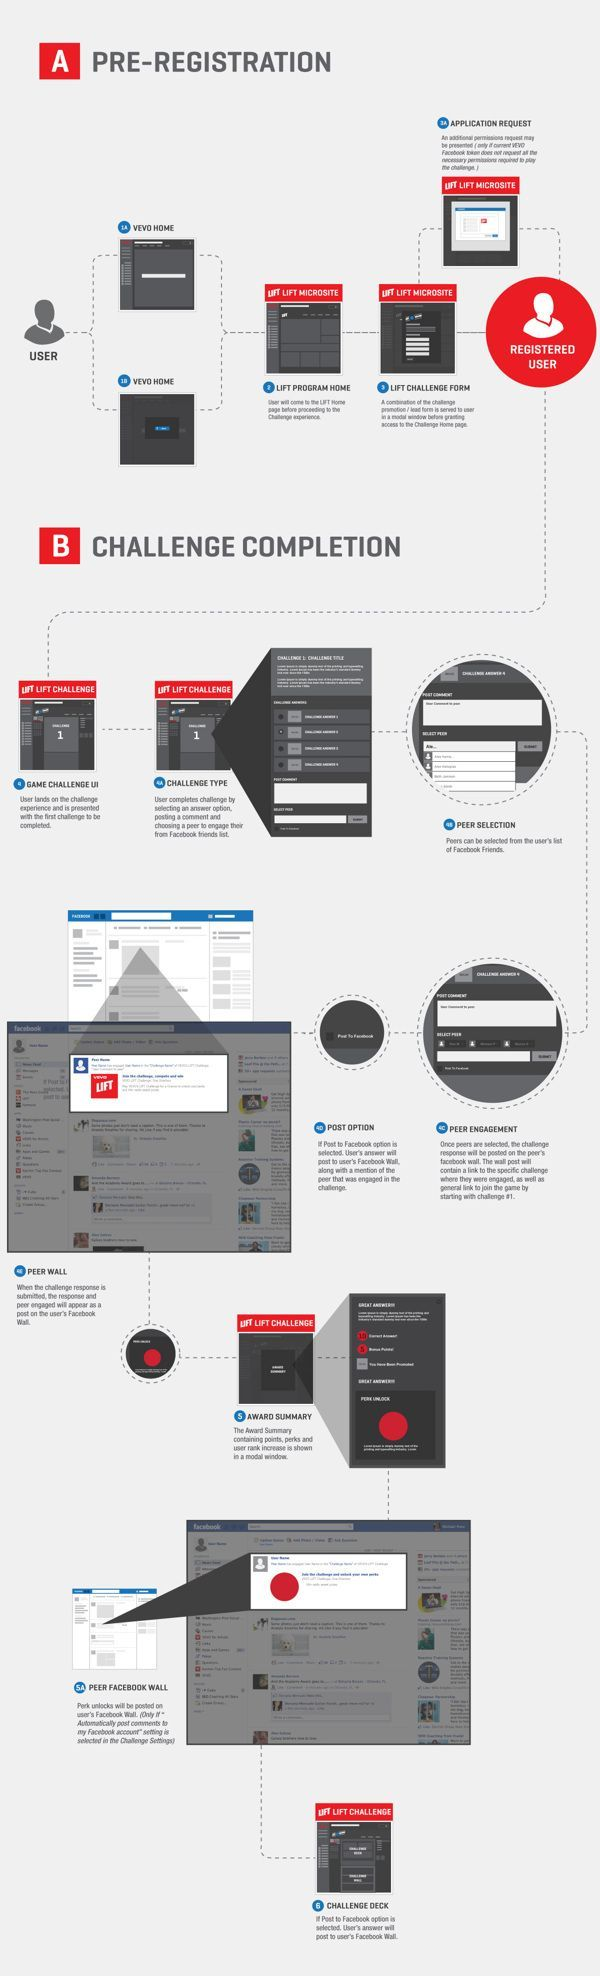 Excellent Graphical Process Flow with callouts // Social Media CHALLENGE UX // Michael Pons. If you like UX, design, or design thinking, check out theuxblog.com